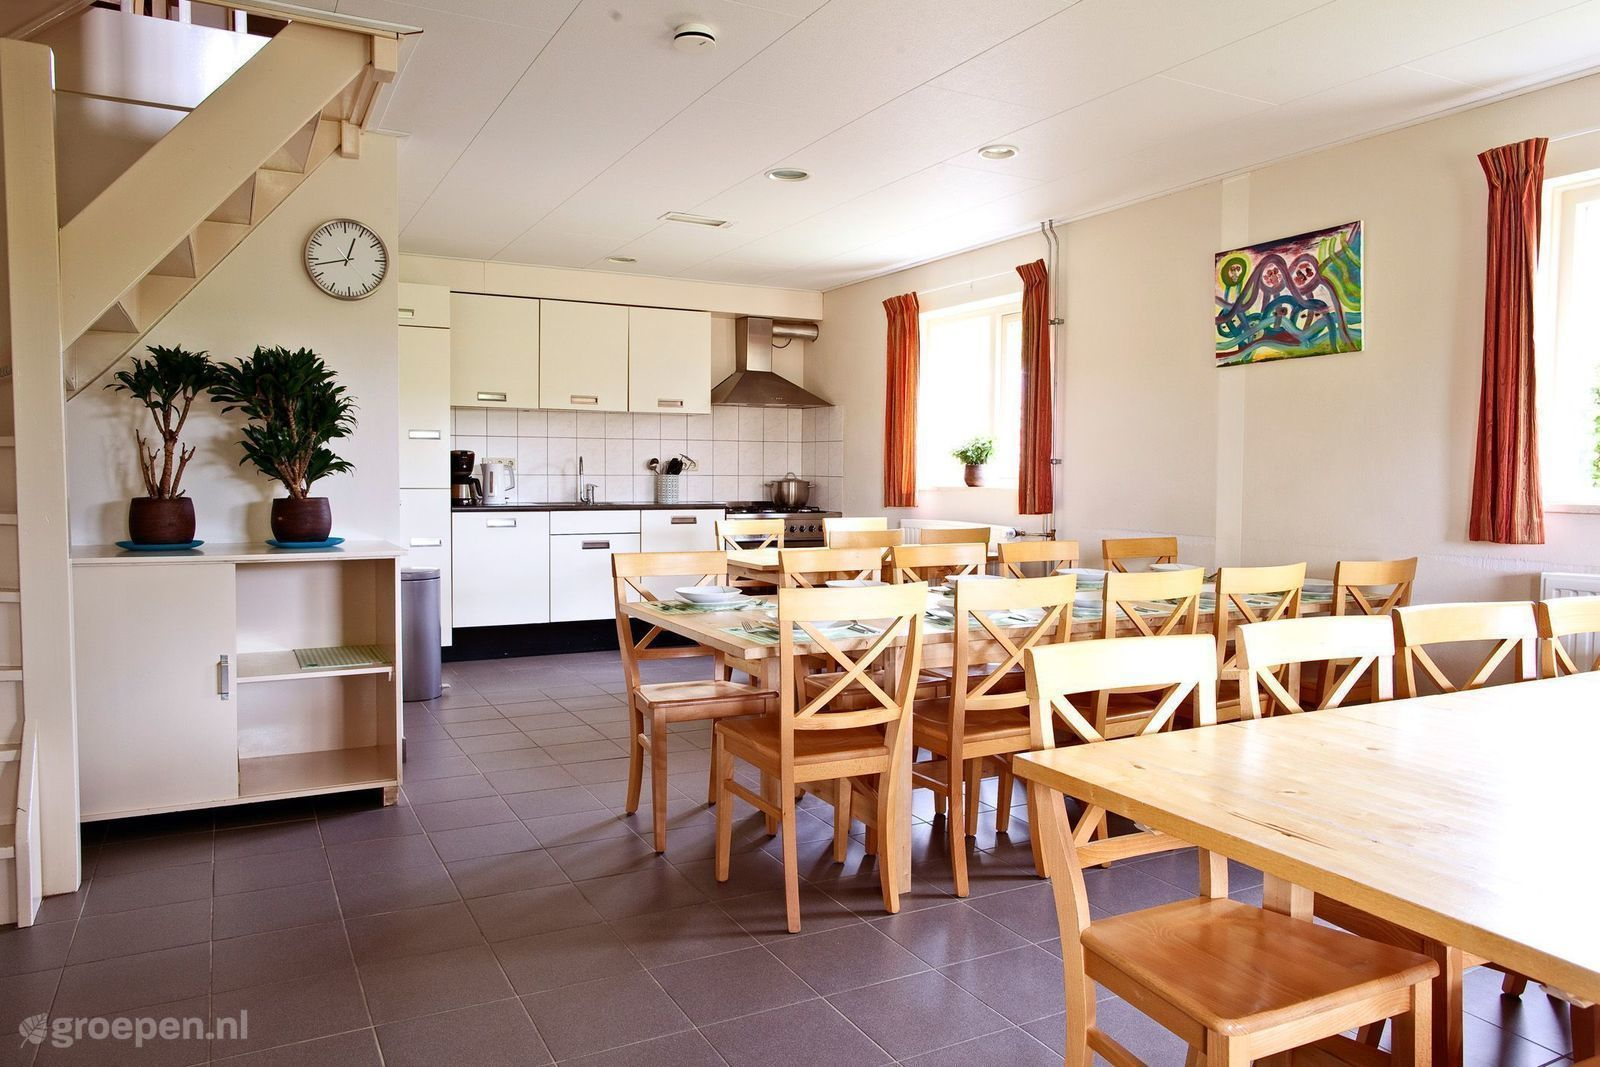 Group accommodation Sint Hubert